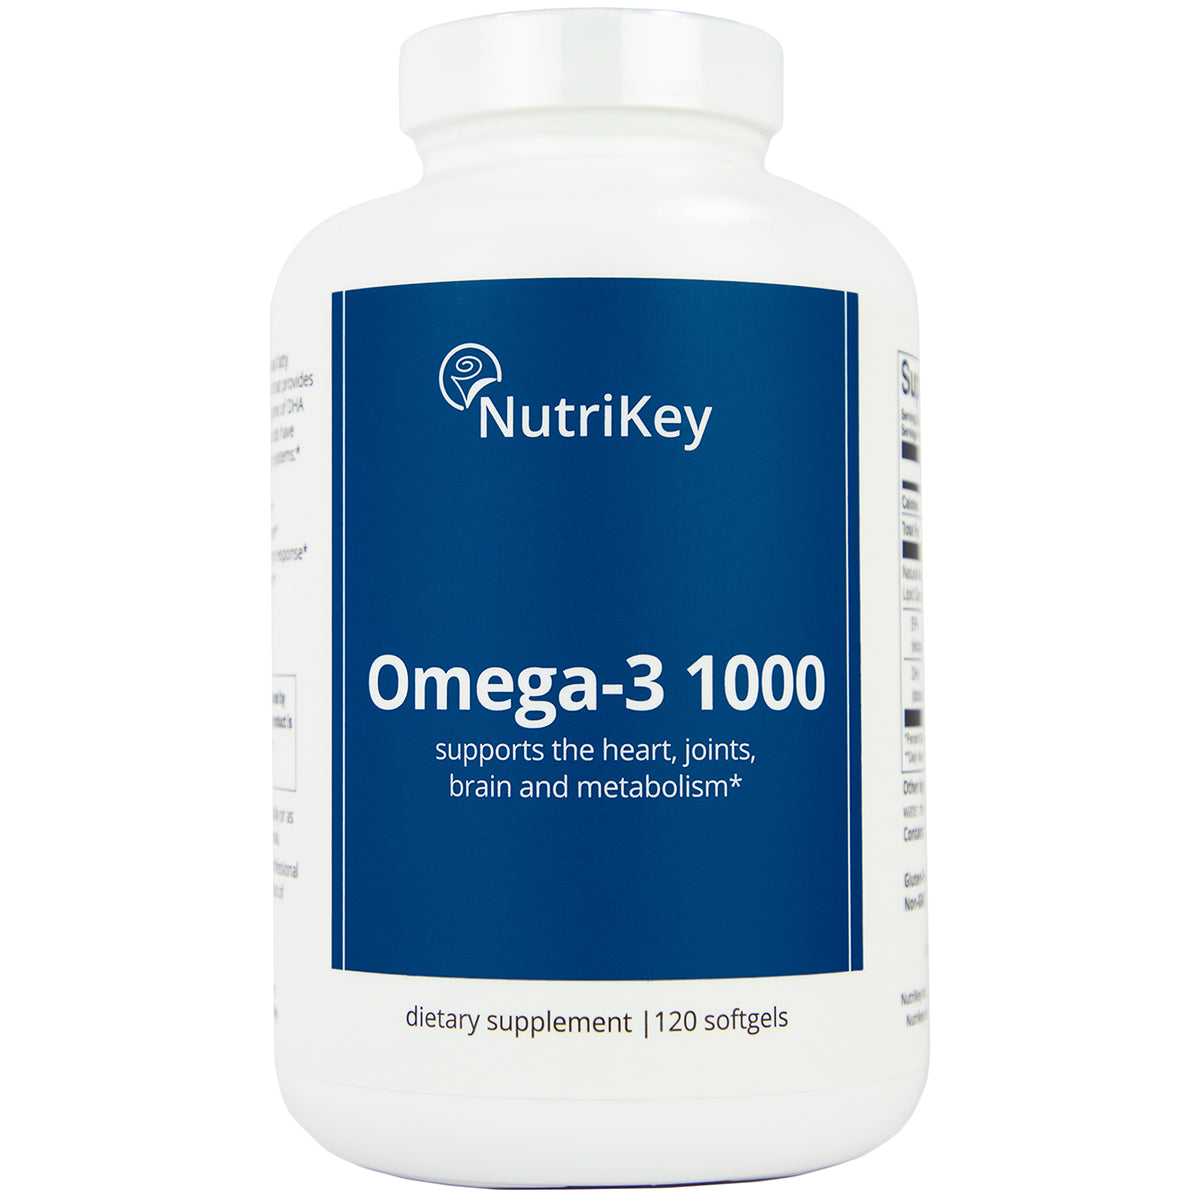 OMEGA-3 1000, 120 softgels